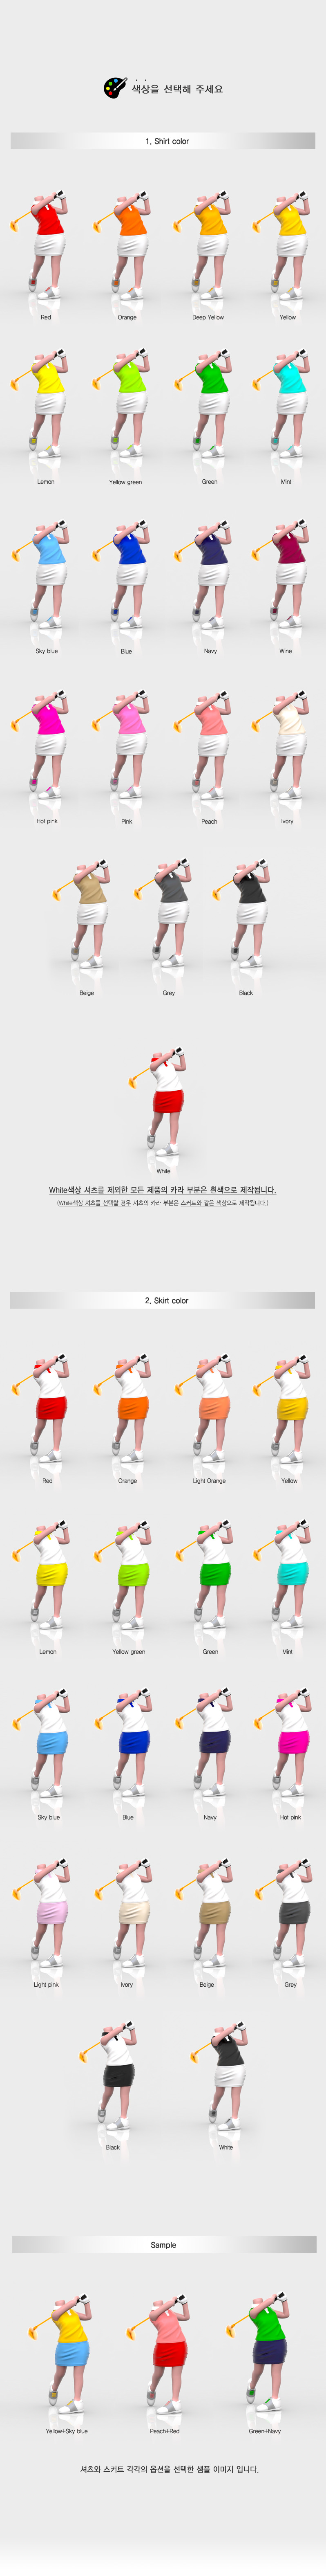 golf_w_skirt04_coloroption